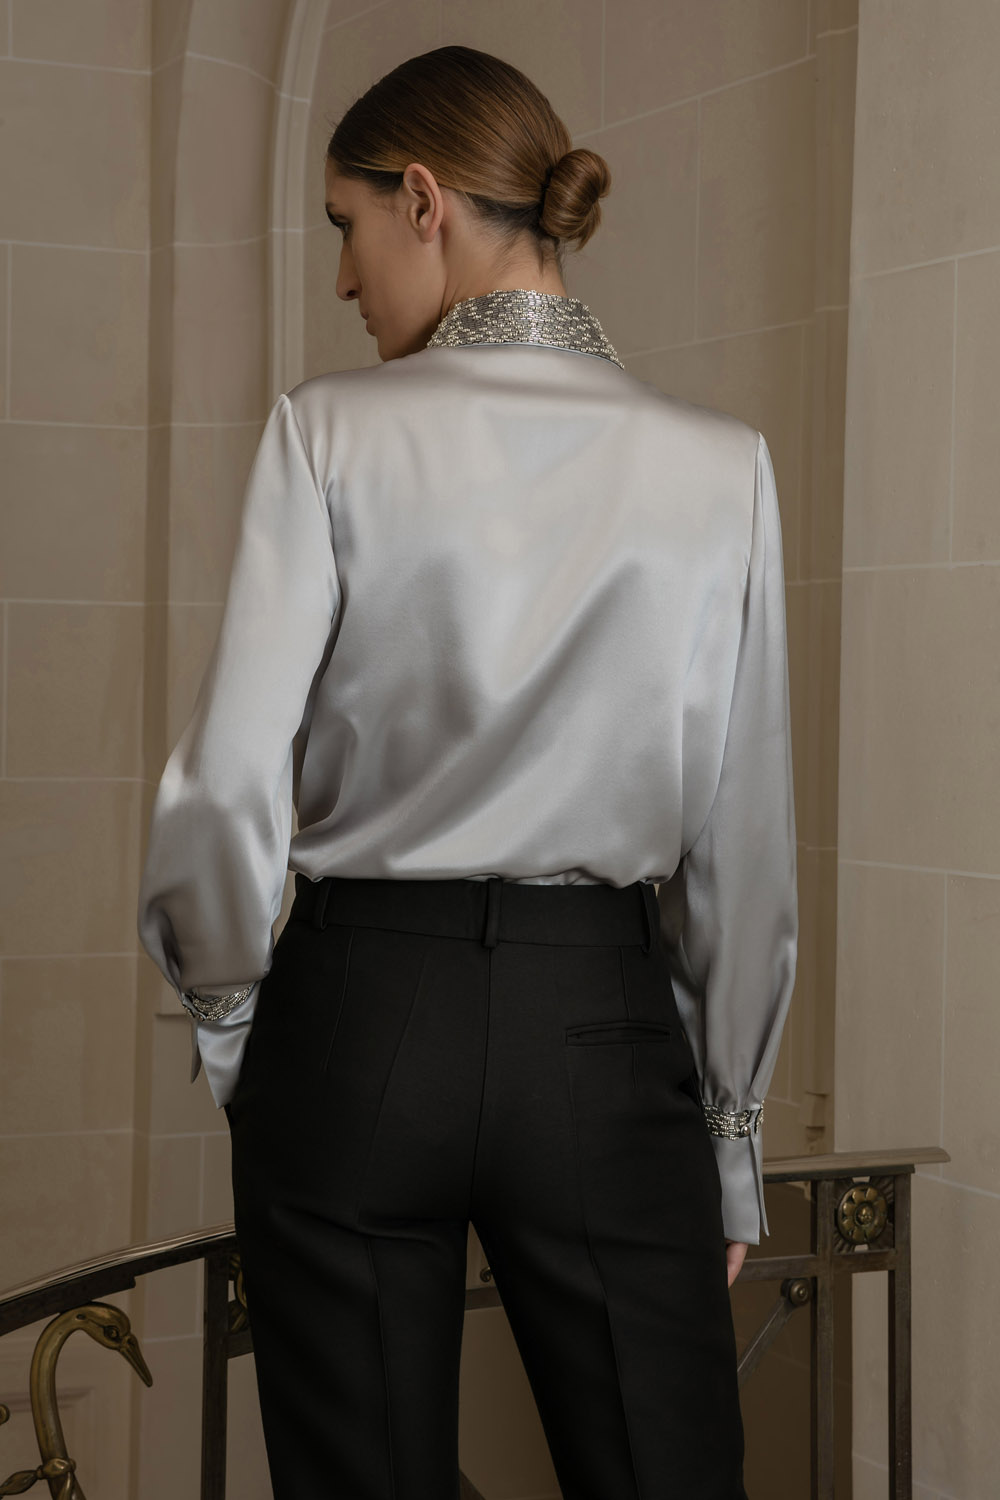 Silk grey shirt with an embroidered collar